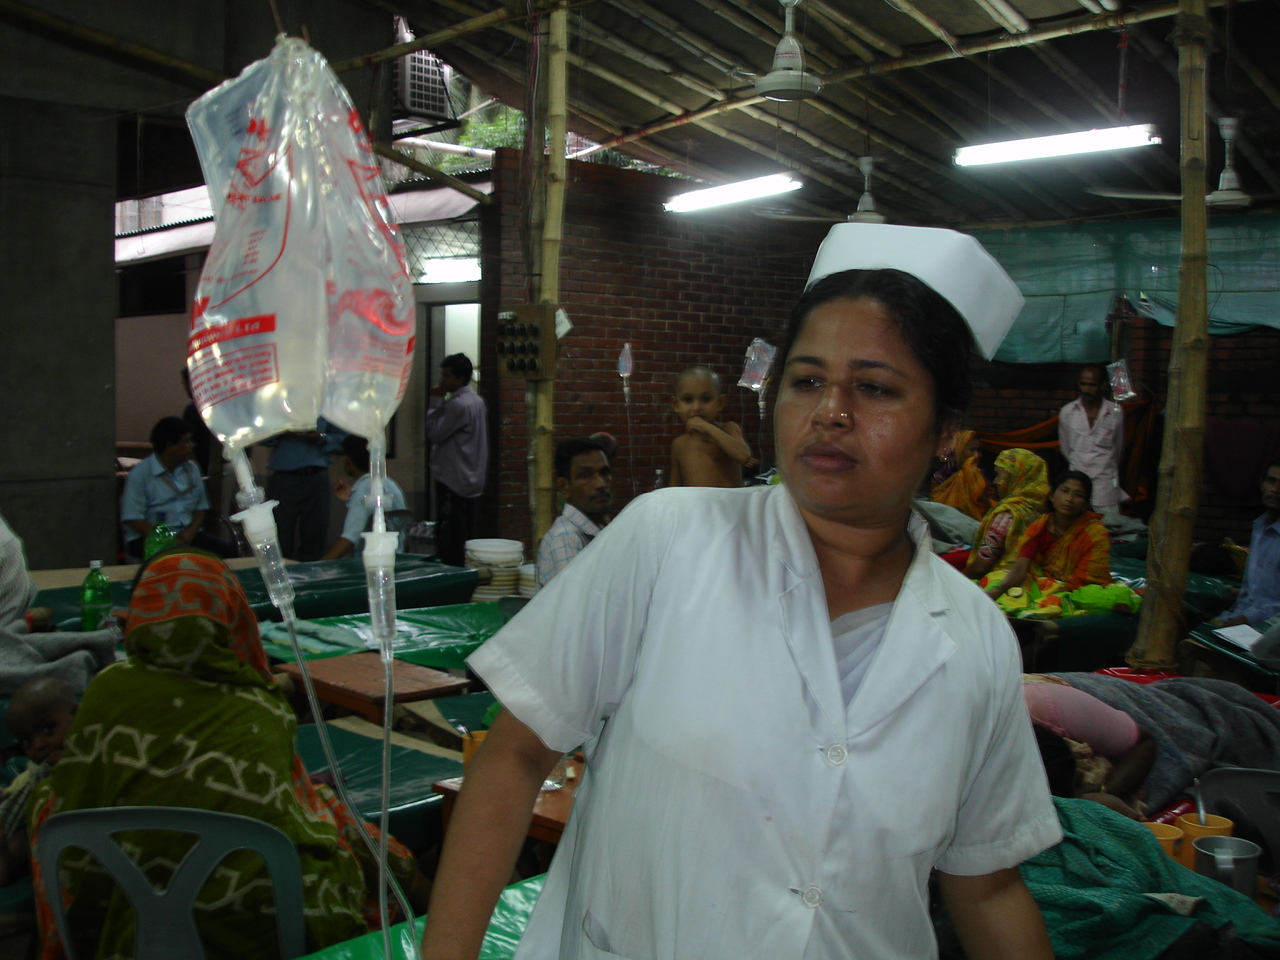 A scene inside the International Centre of Diarrhoeal Disease Research, Bangladesh (ICDDR-B) in Dhaka. More than 50,000 people are suffering from diarrhoea throughout Bangladesh after unusually heavy monsoon rains and flooding